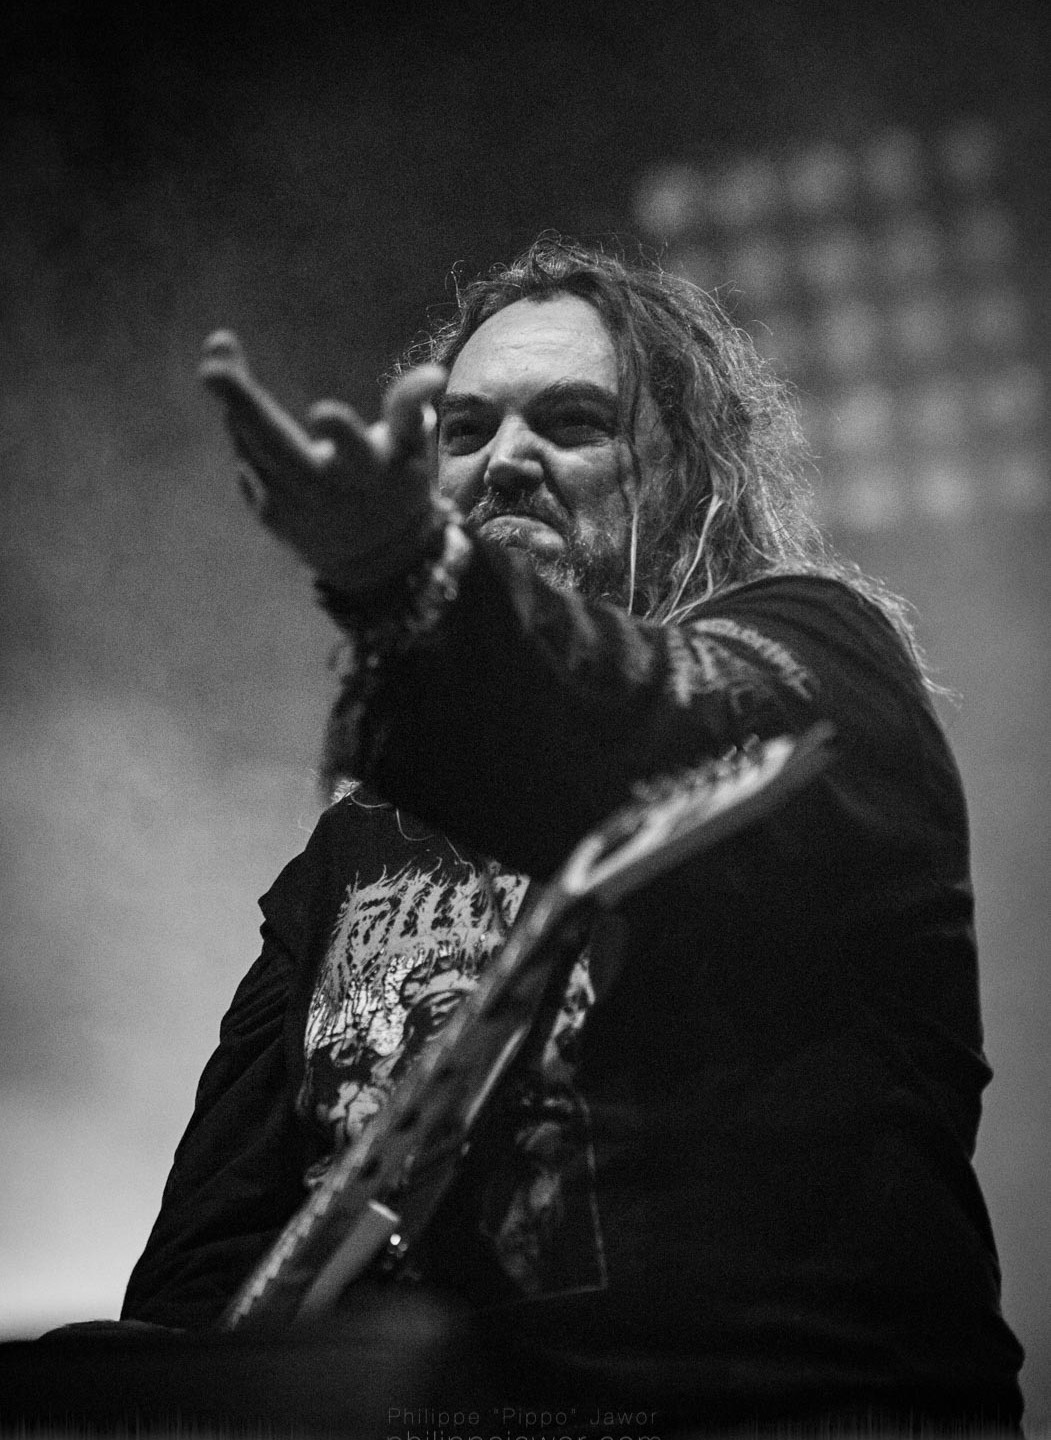 The Brazilian thrash metal brothers Max & Iggor Cavalera live at Sylak Open Air festival, Saint Maurice de Gourdans, France, August 2017.  On assignment for Metal Obs' Magazine All rights reserved.